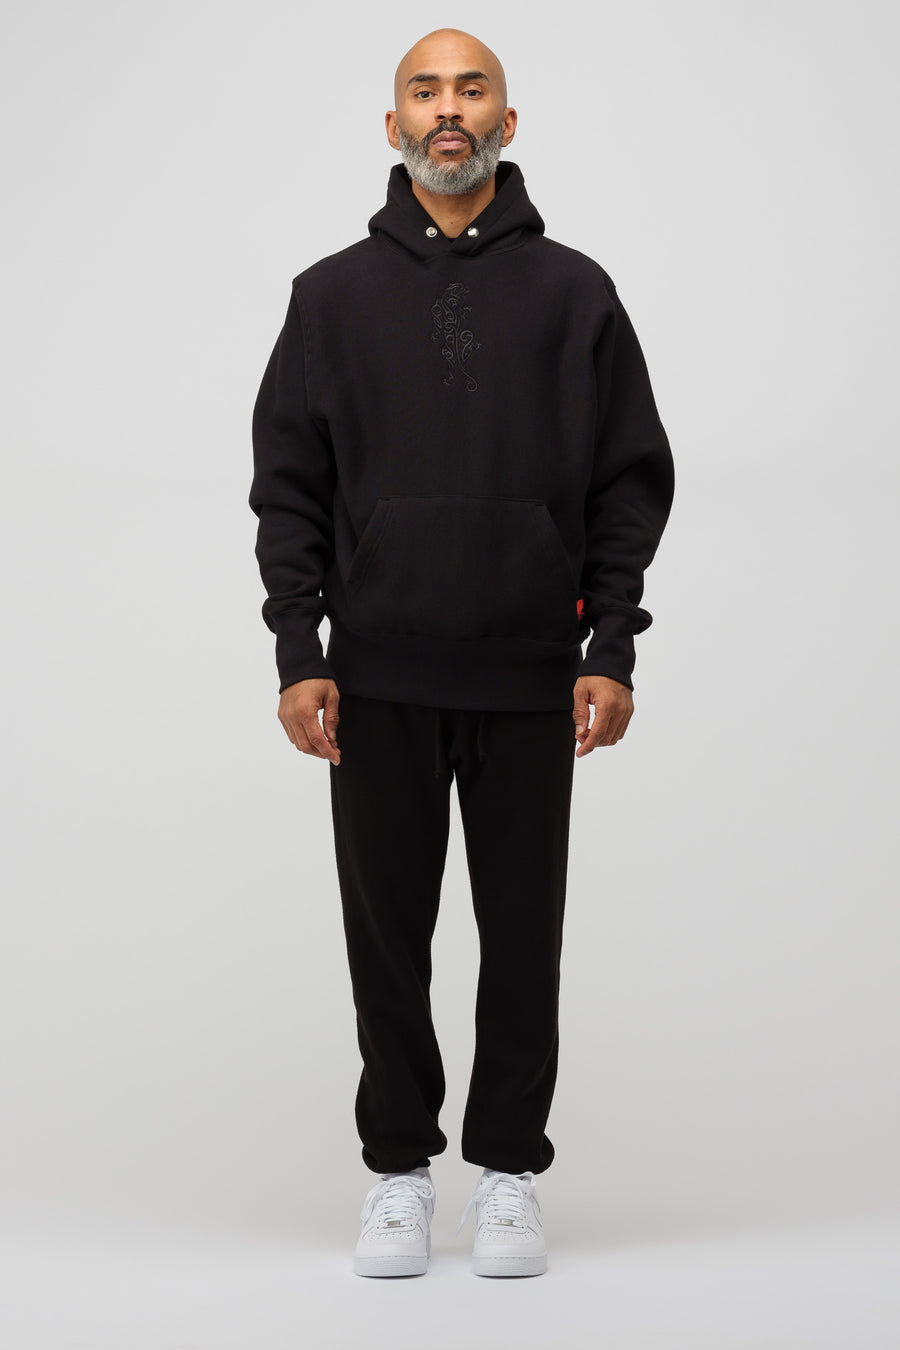 LQQK Studio Signature Snap Dojo Hoodie in Black - Notre